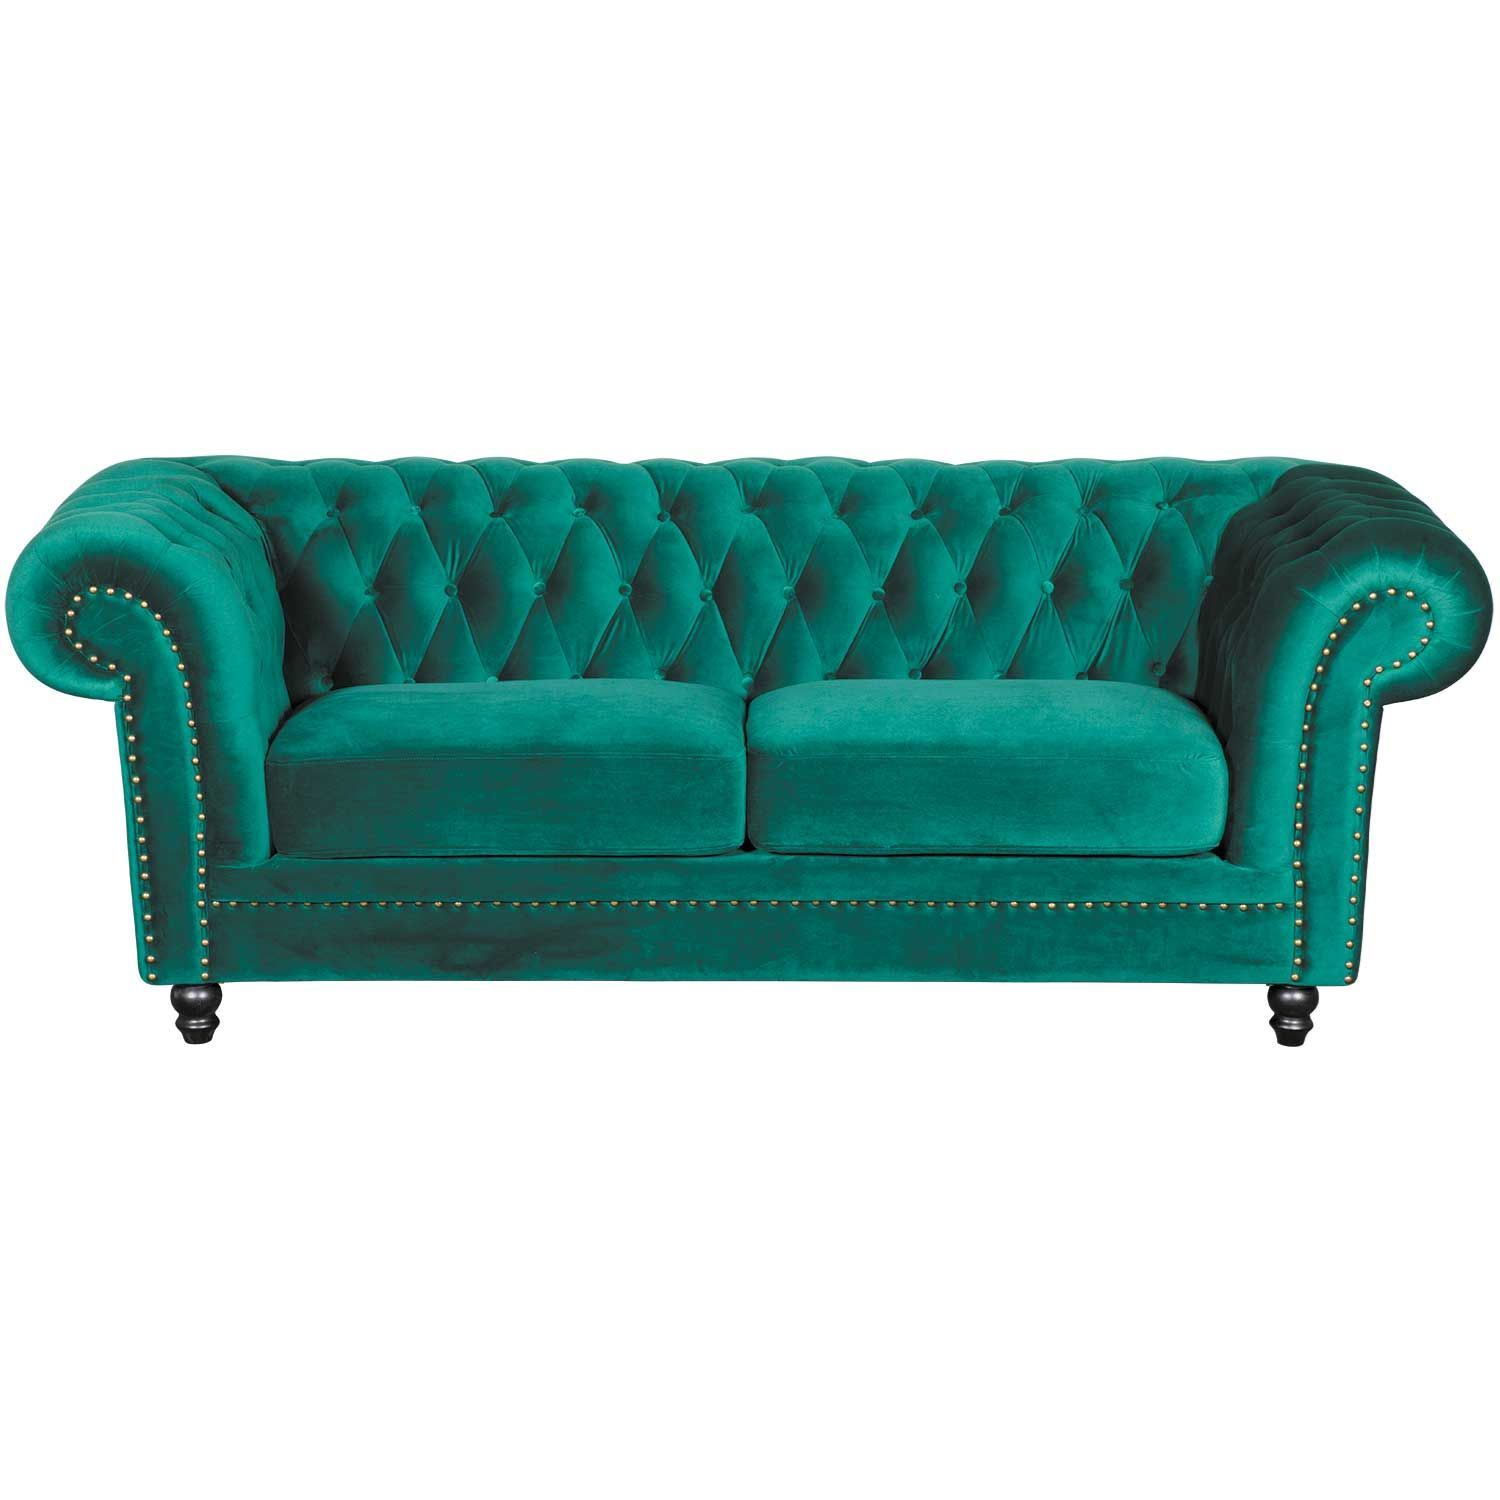 Callie Tufted Emerald Sofa | My225 S3/cc 42 | Cambridge Home | Afw In Callie Sofa Chairs (Photo 9 of 20)